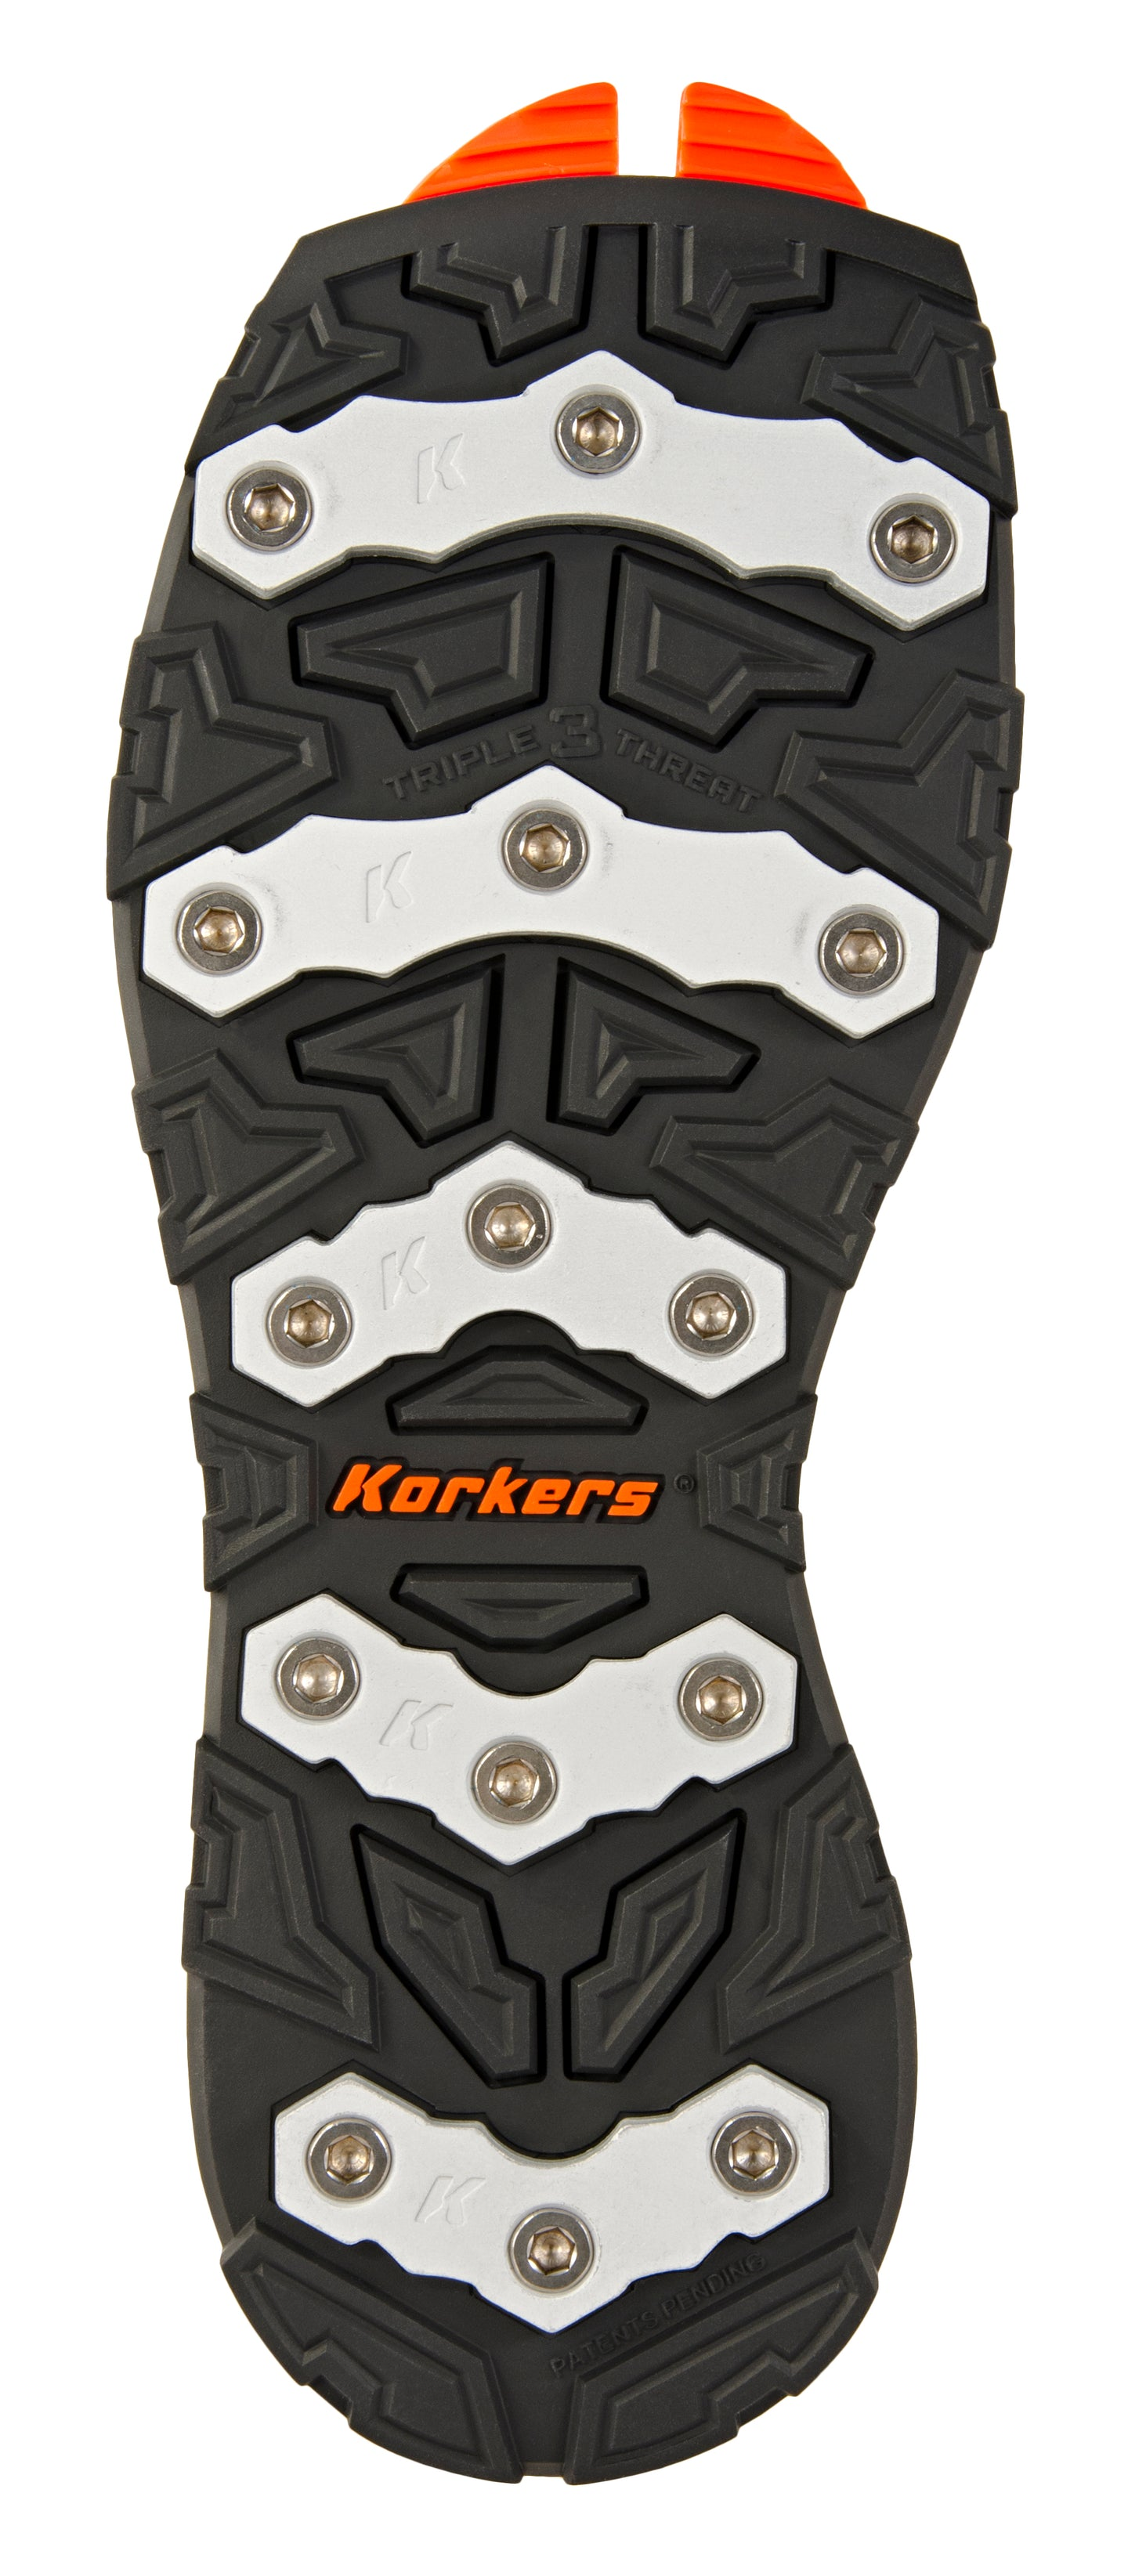 Korkers Triple Threat Aluminum Bar Sole